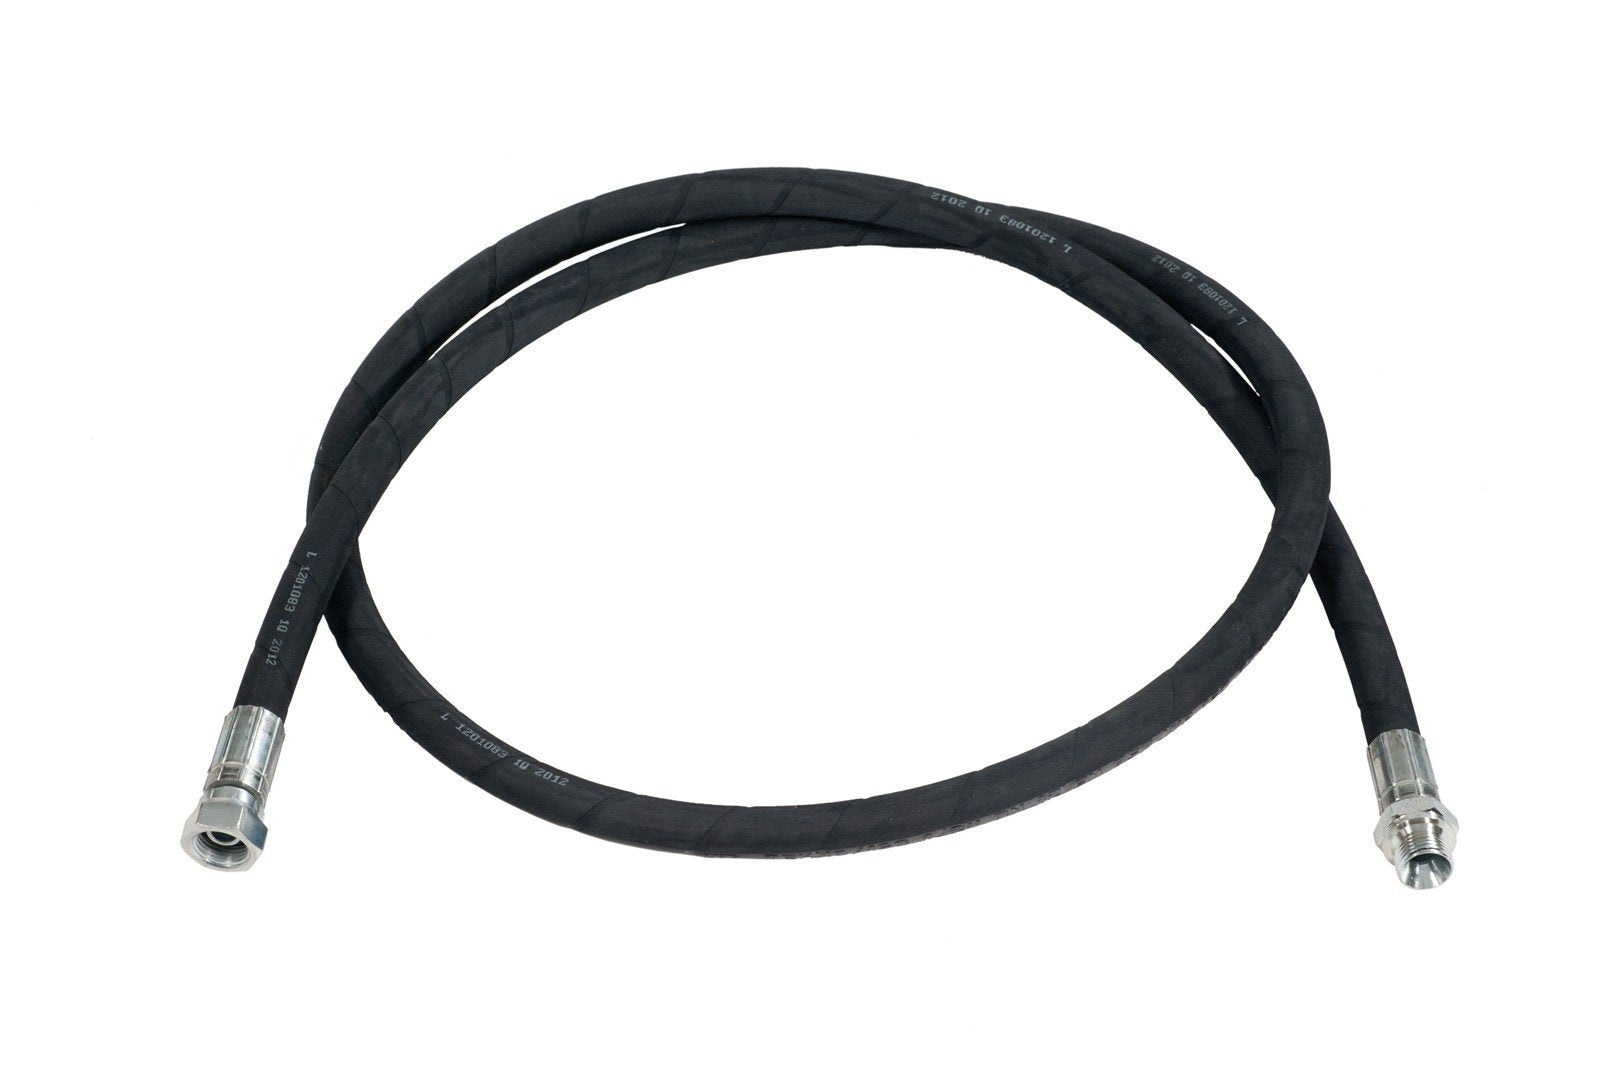 906-0626-010 - hoses for hose reels for oil and similar 160 bar